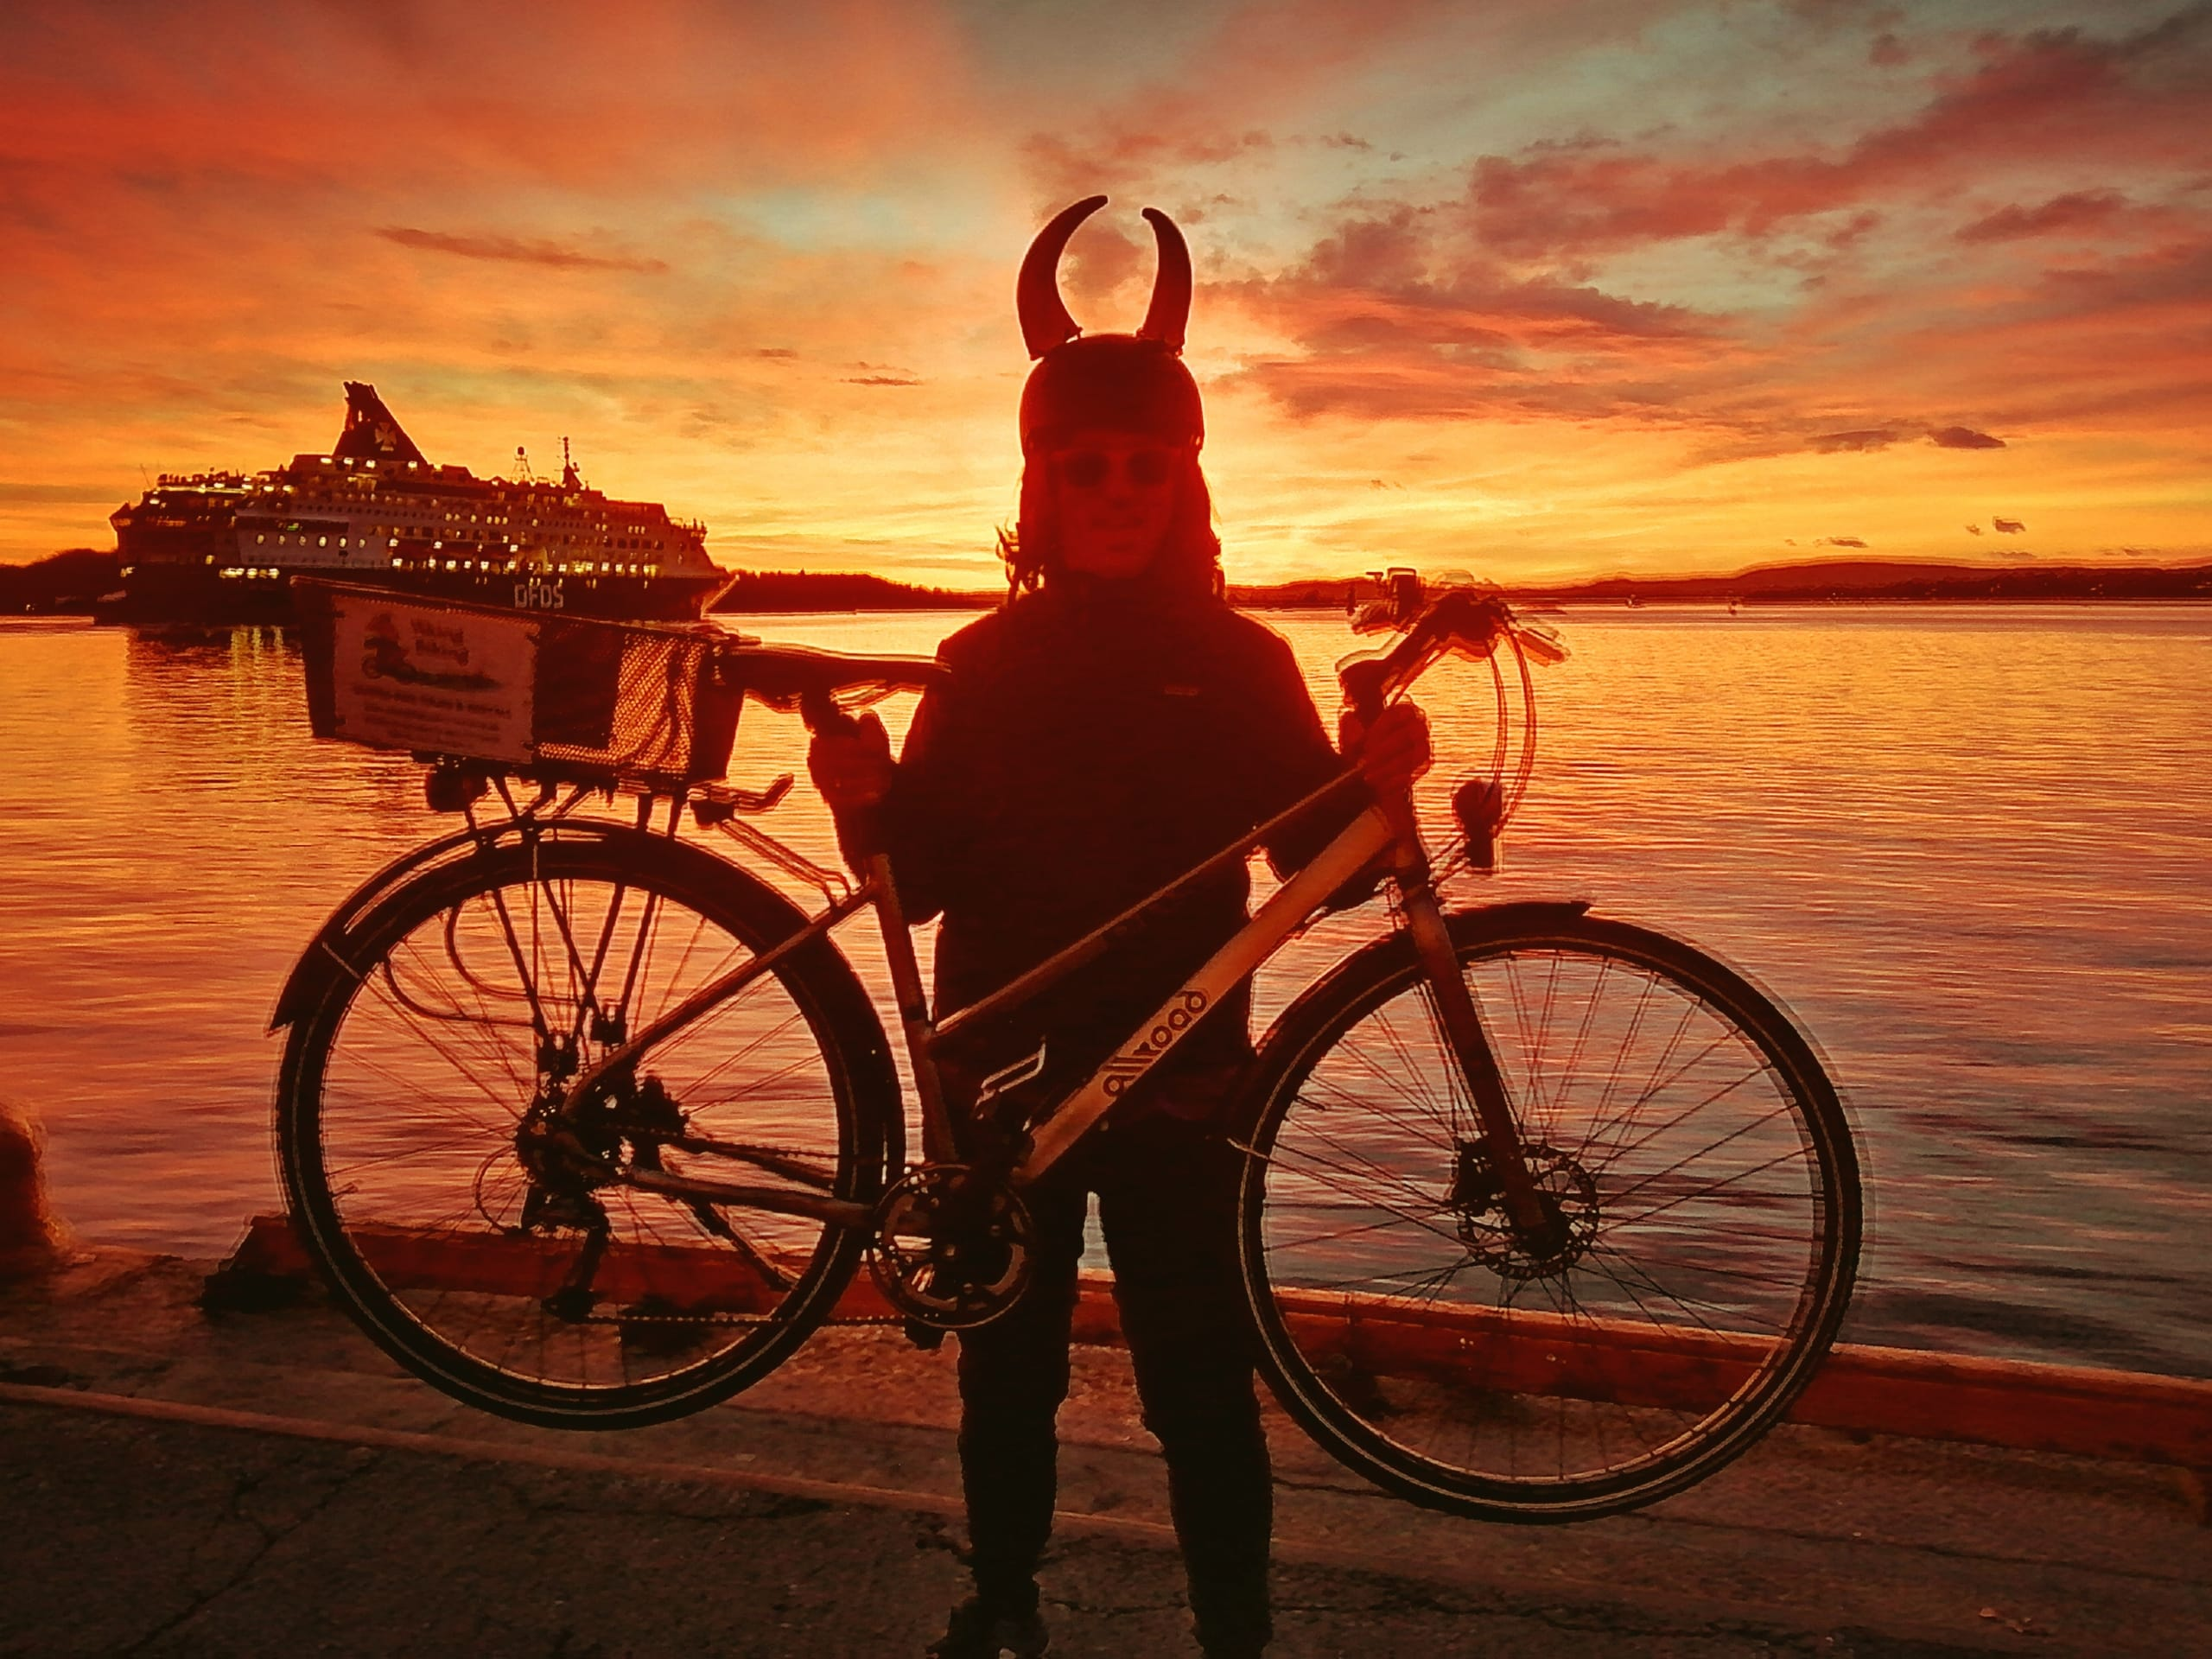 A man wearing a viking helmet while lifting his bike. A vivid red sunset is playing out in the background.